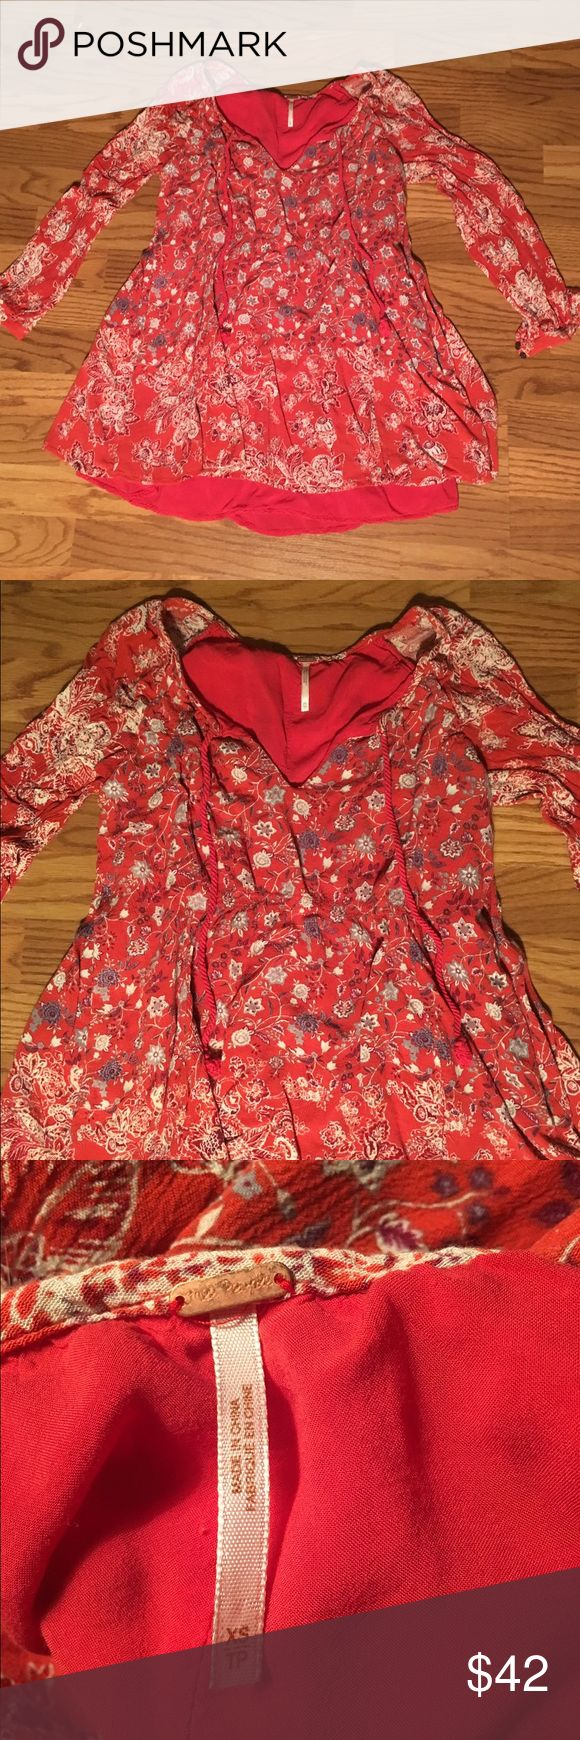 Free people paisley patterned boho peasant dress Long sleeve Flowy blue and white flowered coral colored dress Free People Dresses Mini